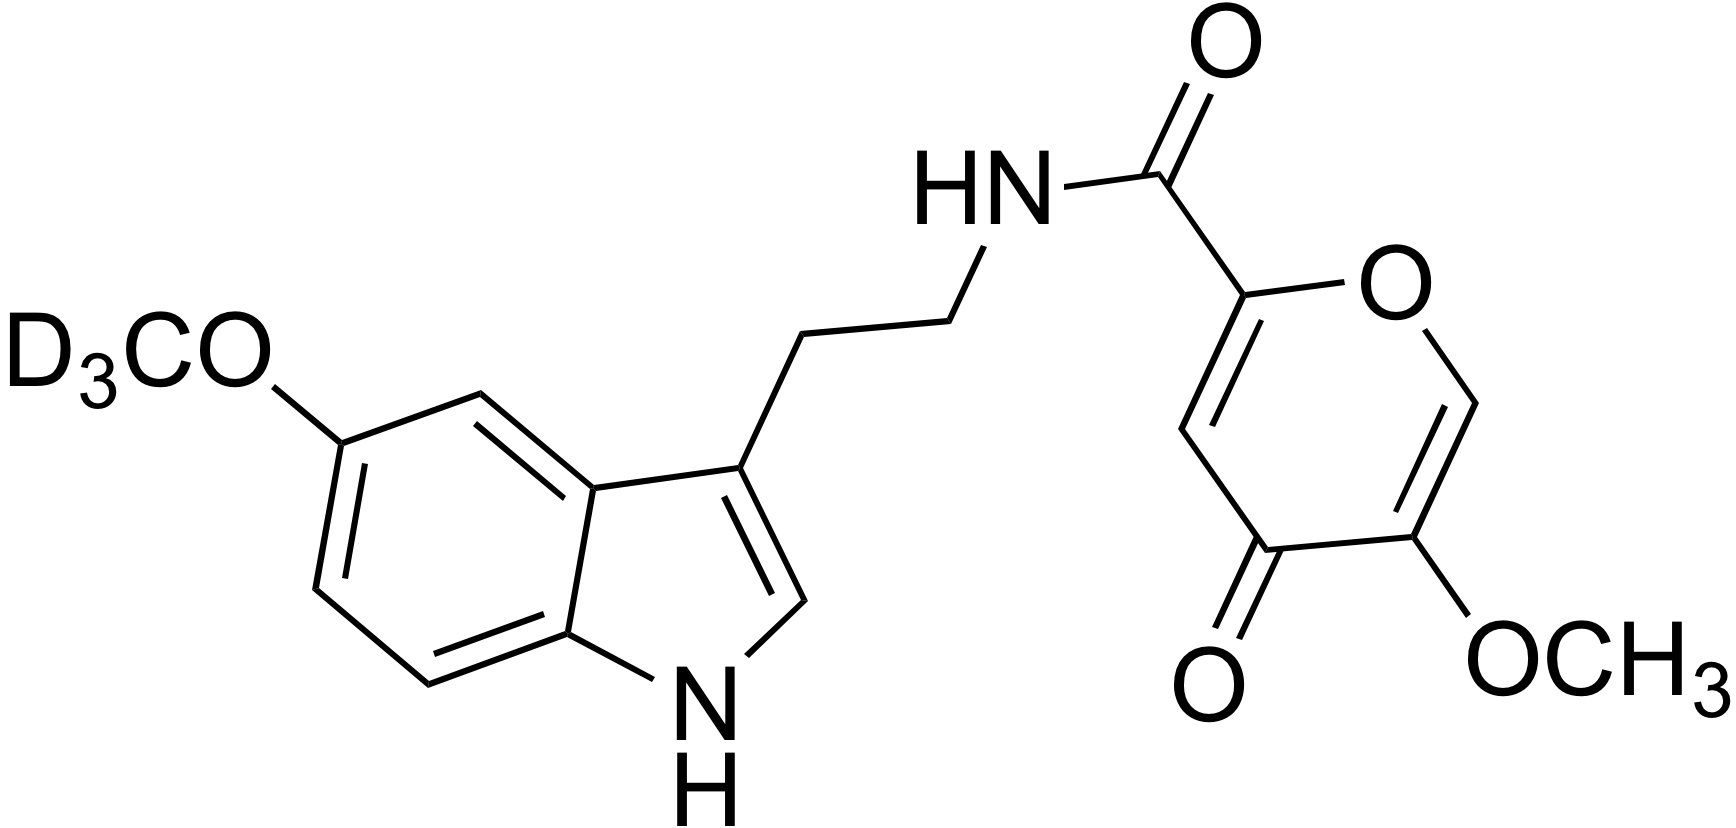 N-[2-(5-Methoxy-d<sub>3</sub>-indol-3-yl)-ethyl]-2-methoxy-commenamide